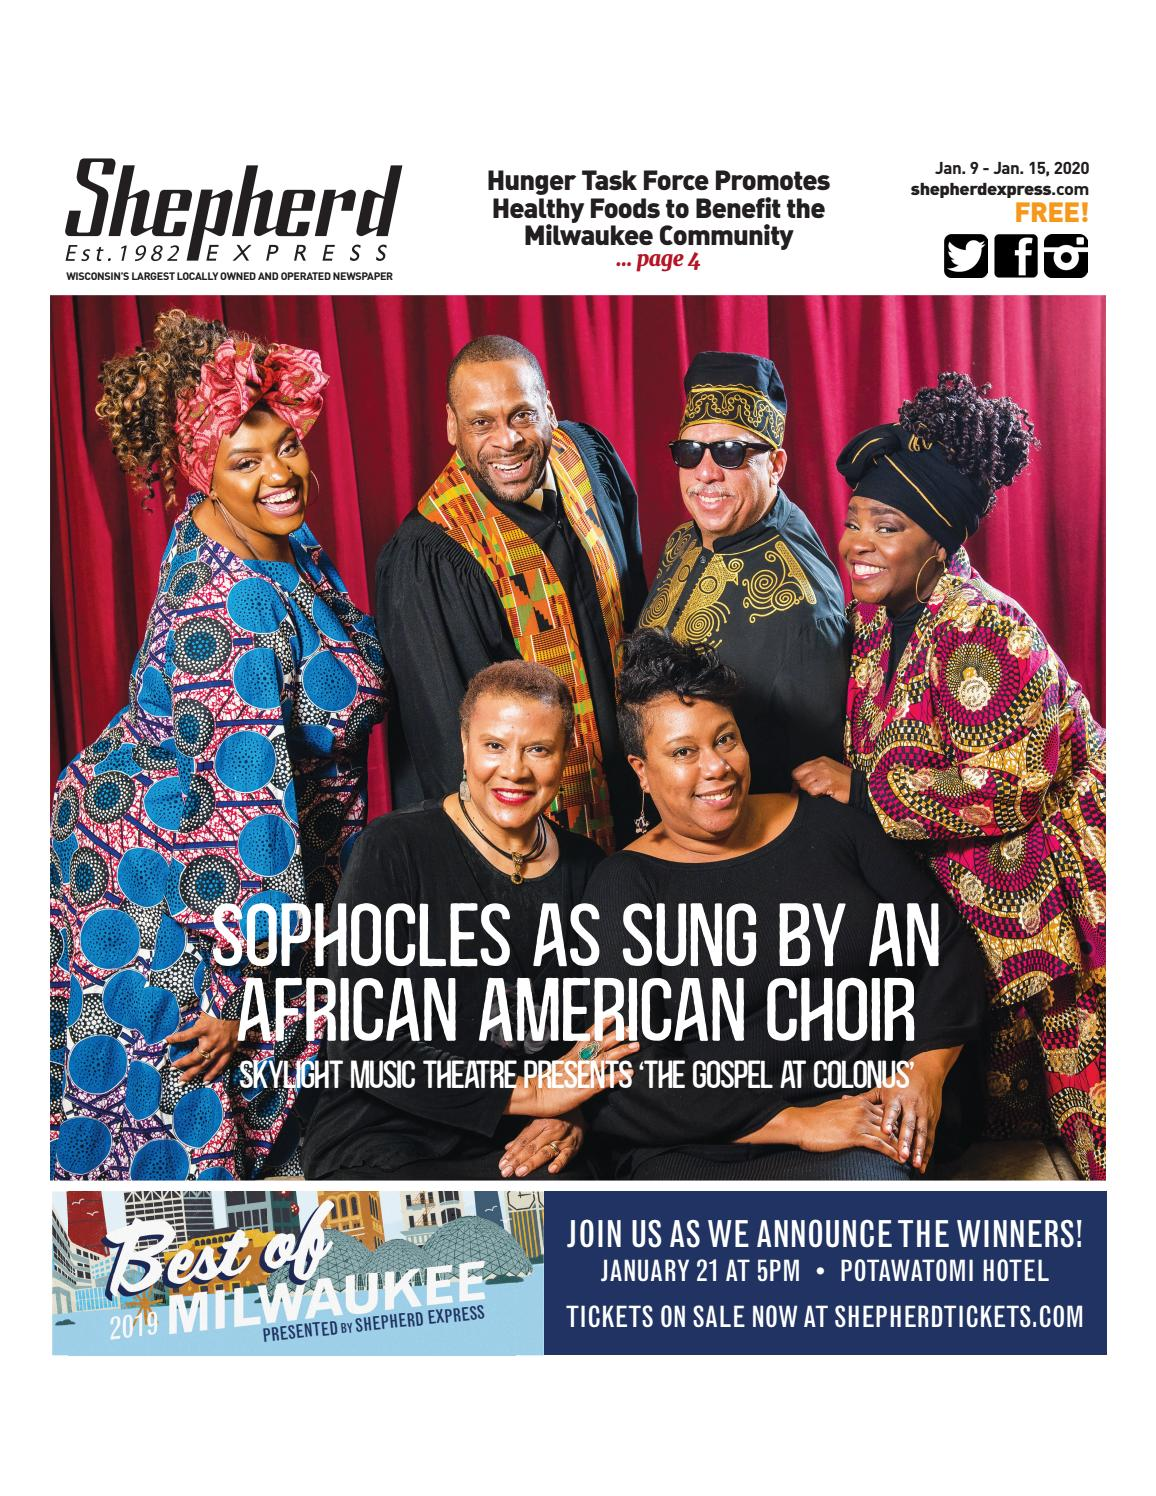 Gospel Choir Christmas Concerts Milwuakee 2020 Print Edition: Jan. 9, 2020 by Shepherd Express   issuu